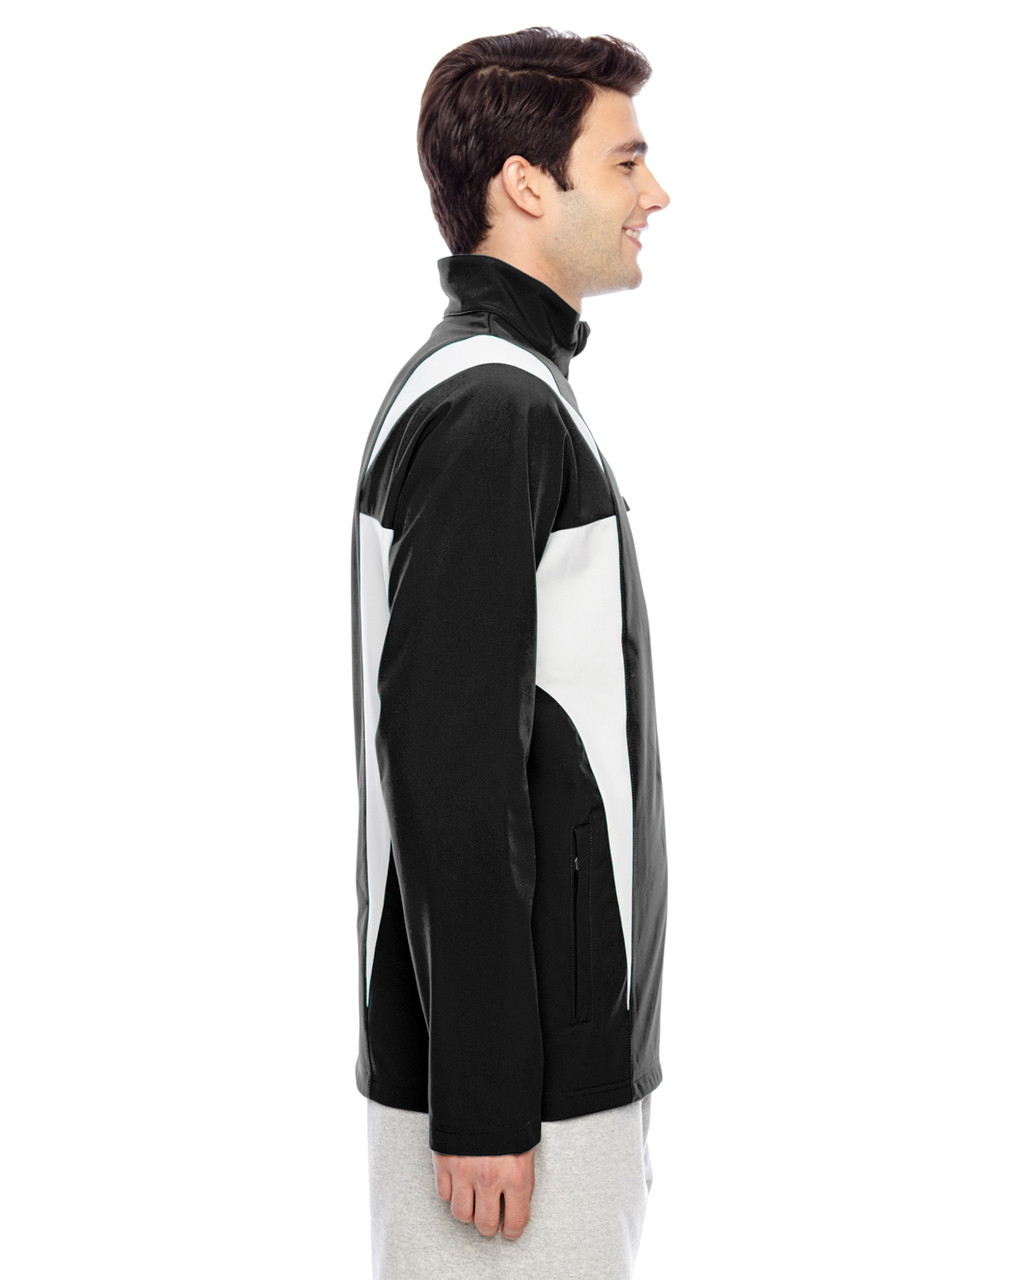 Black/Sport Silver - Side, TT82 Team 365 Icon Colourblock Soft Shell Jacket  | BlankClothing.ca